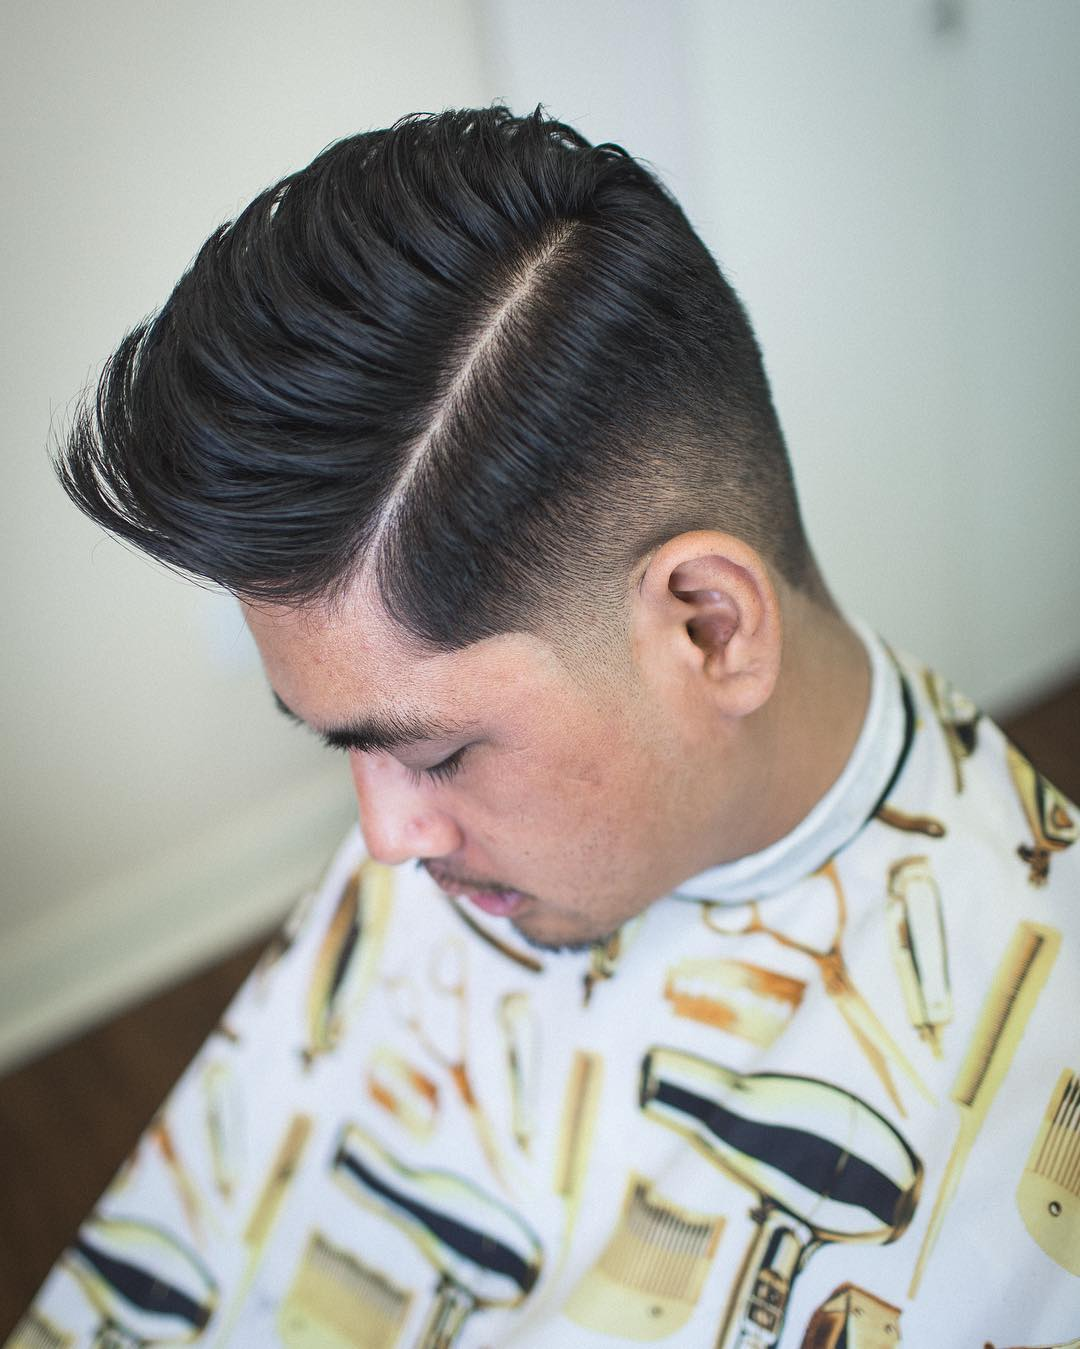 The 8 Best Men S Hairstyles To Try In 2021 The Modest Man